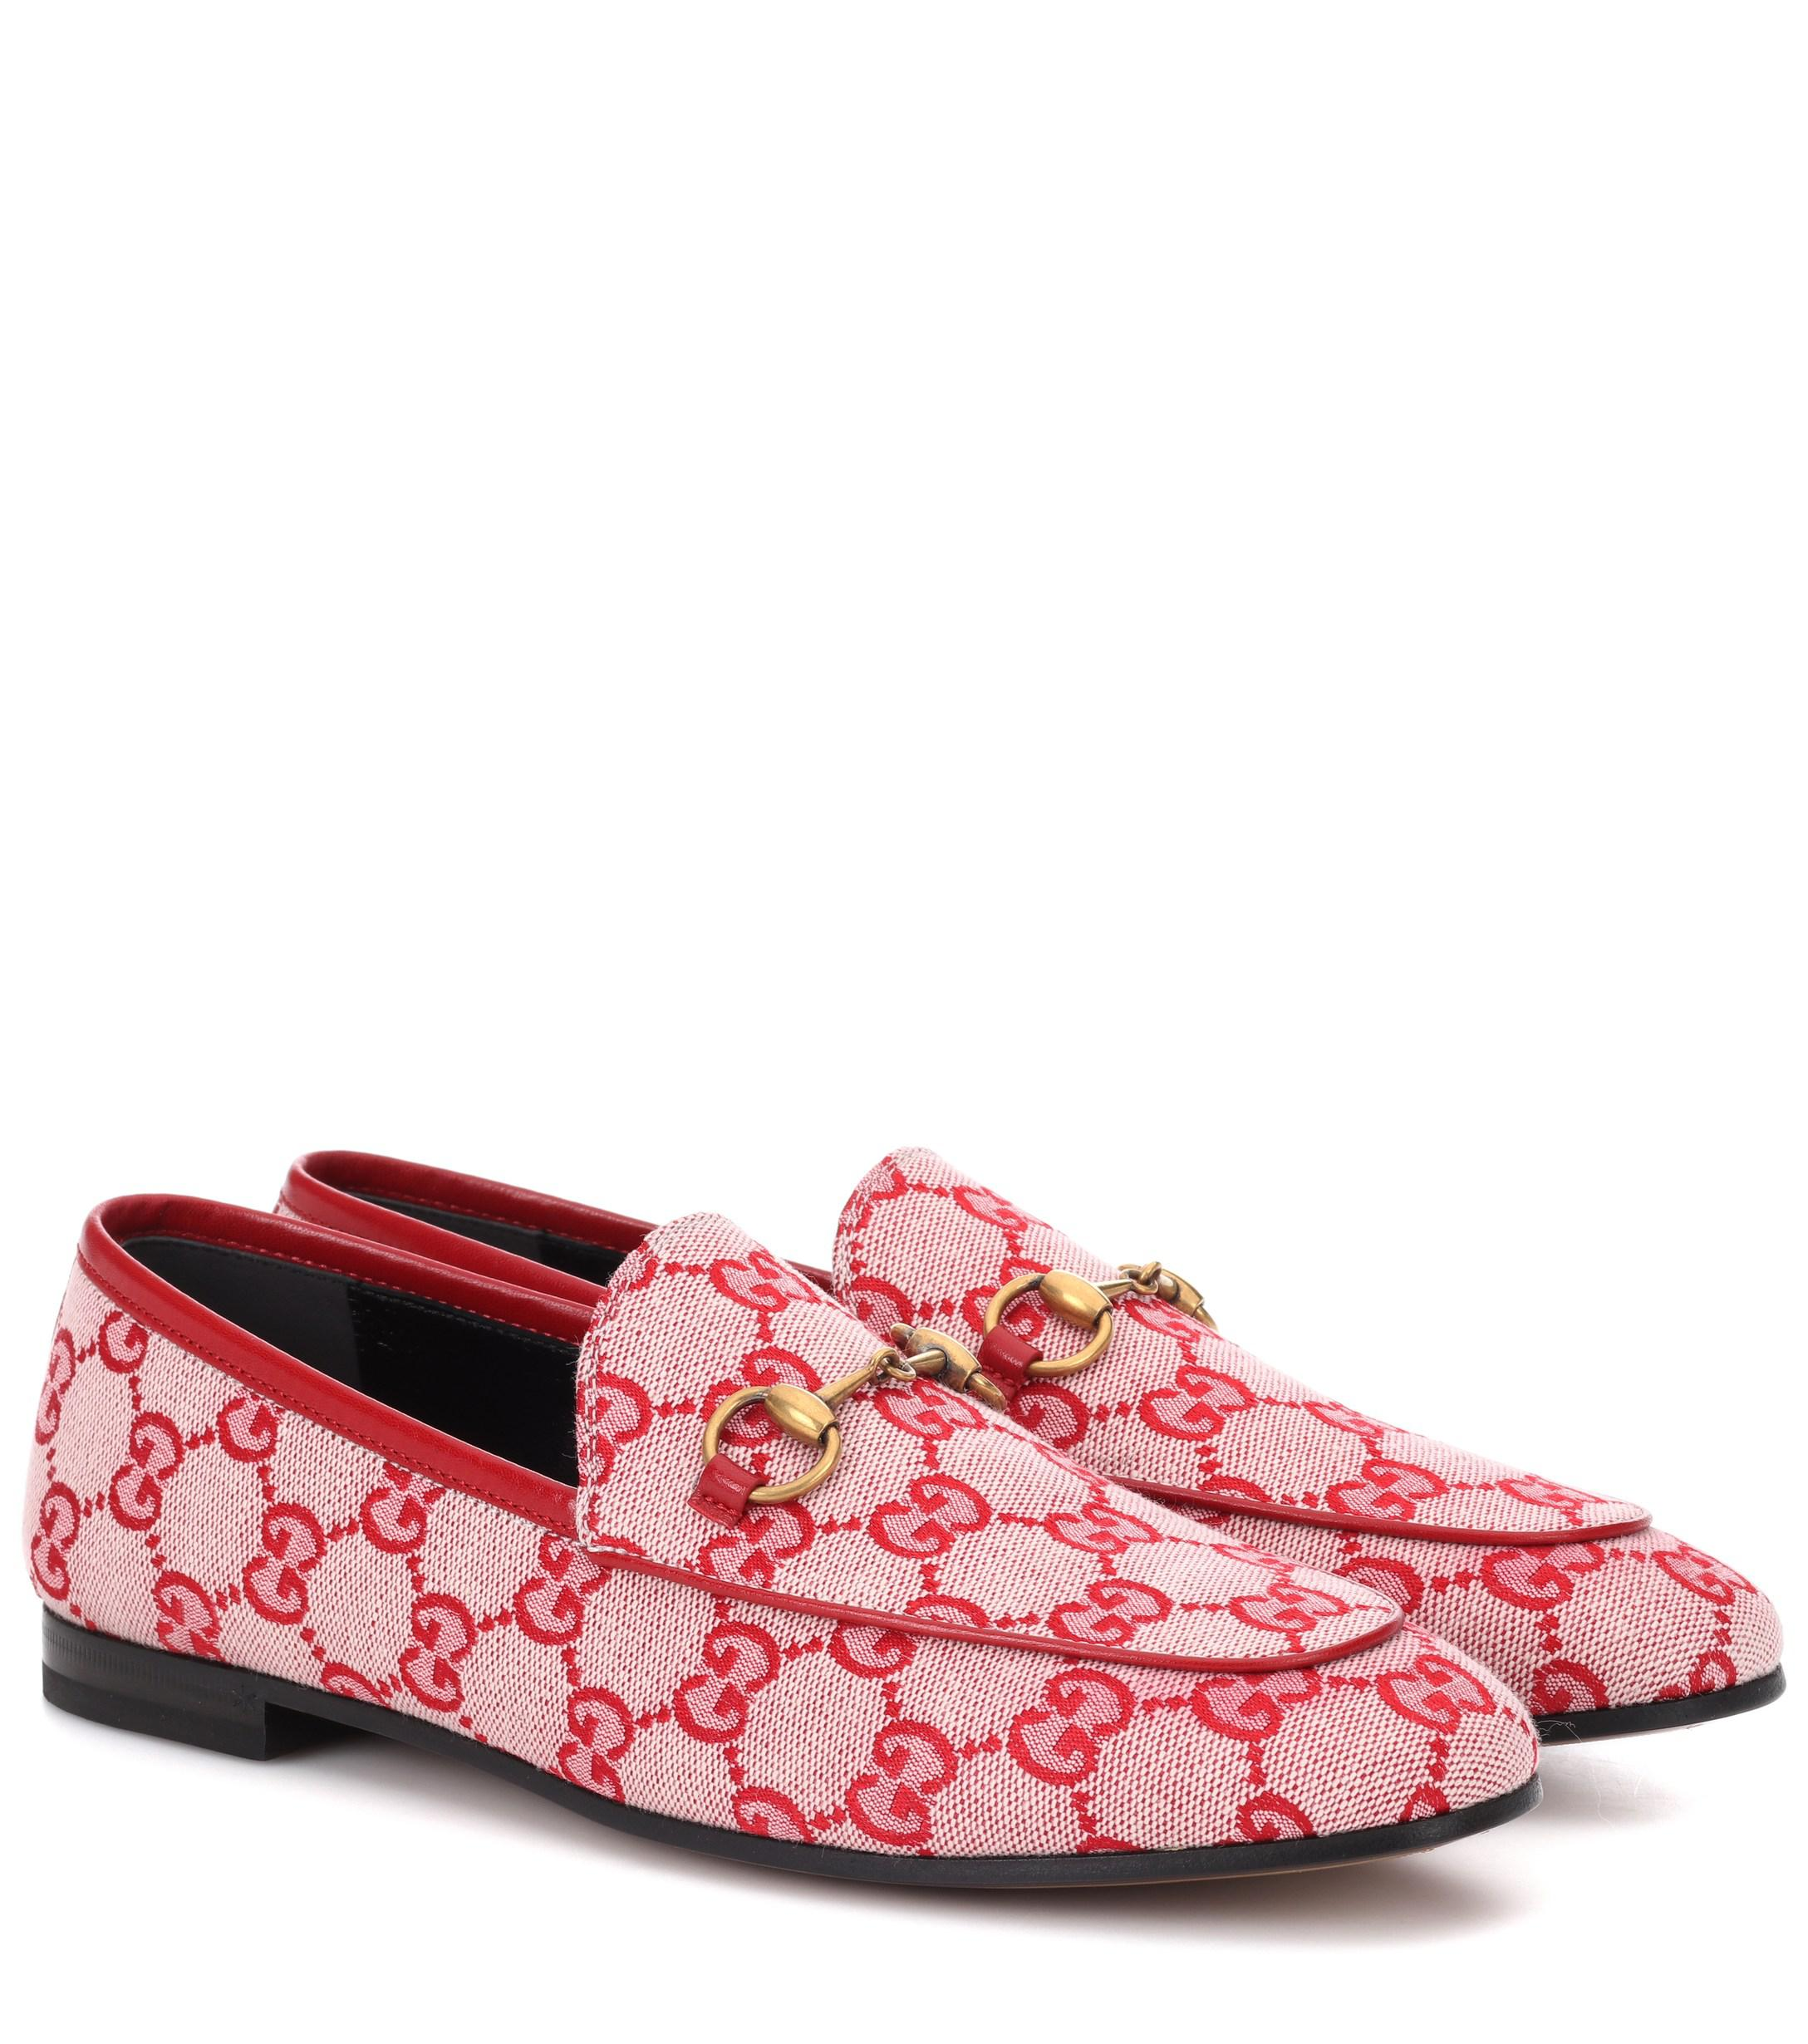 9e44a7e8842 Lyst - Gucci Jordaan GG Canvas Loafers in Red